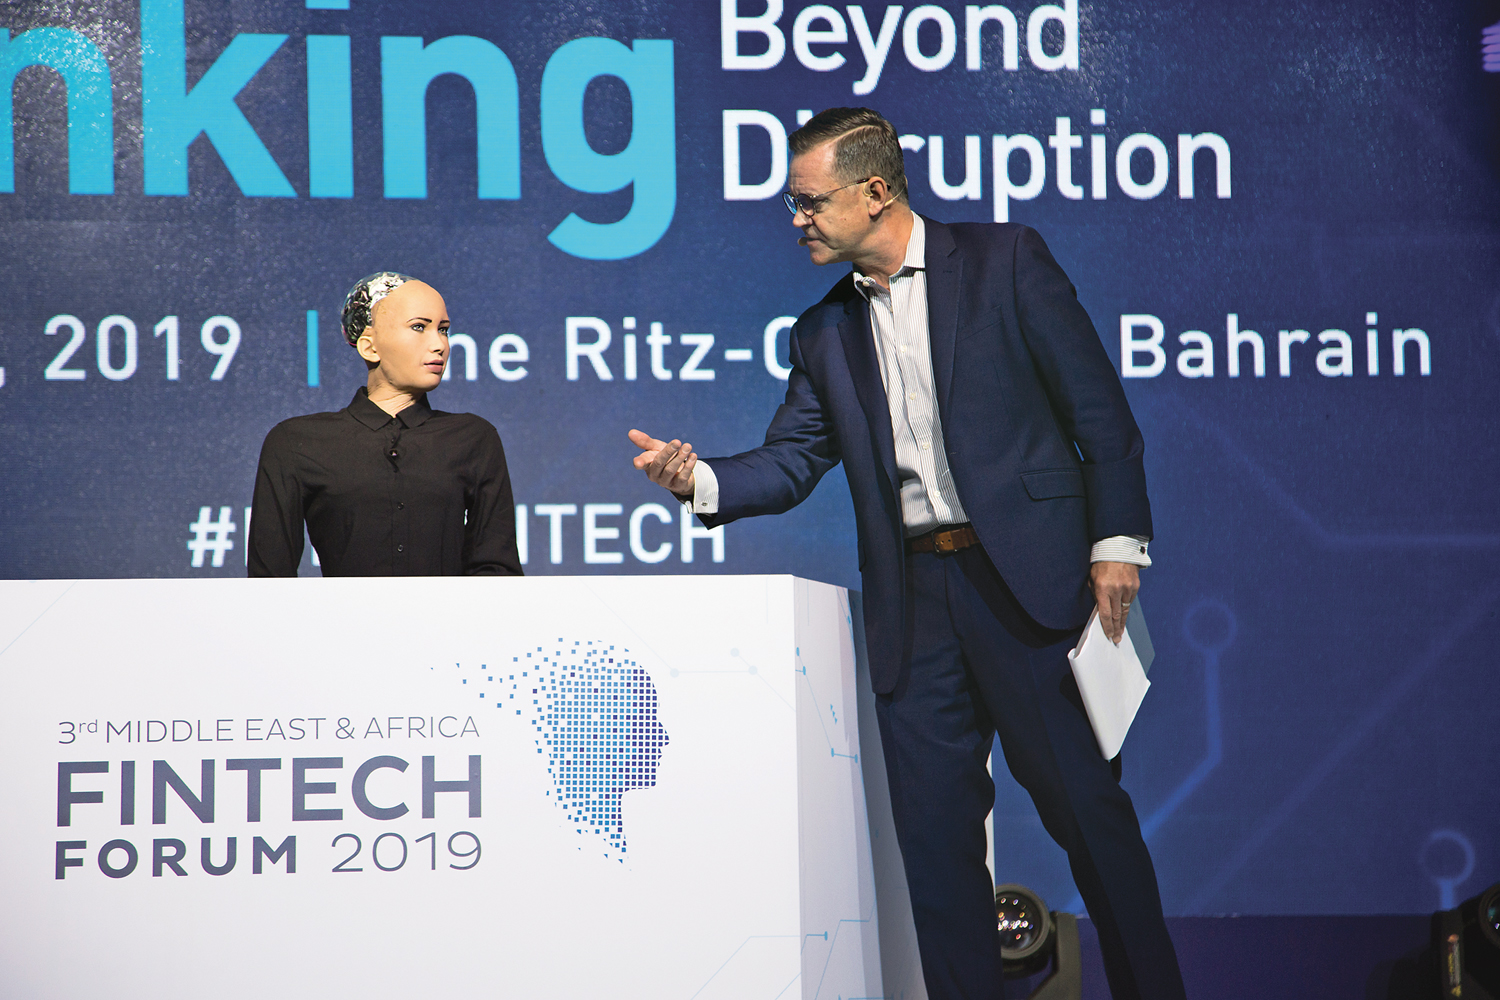 Sophia the Robot at the 3rd Middle East and Africa FinTech Forum on 21 February 2019 in Bahrain. The forum was attended by over 800 delegates.